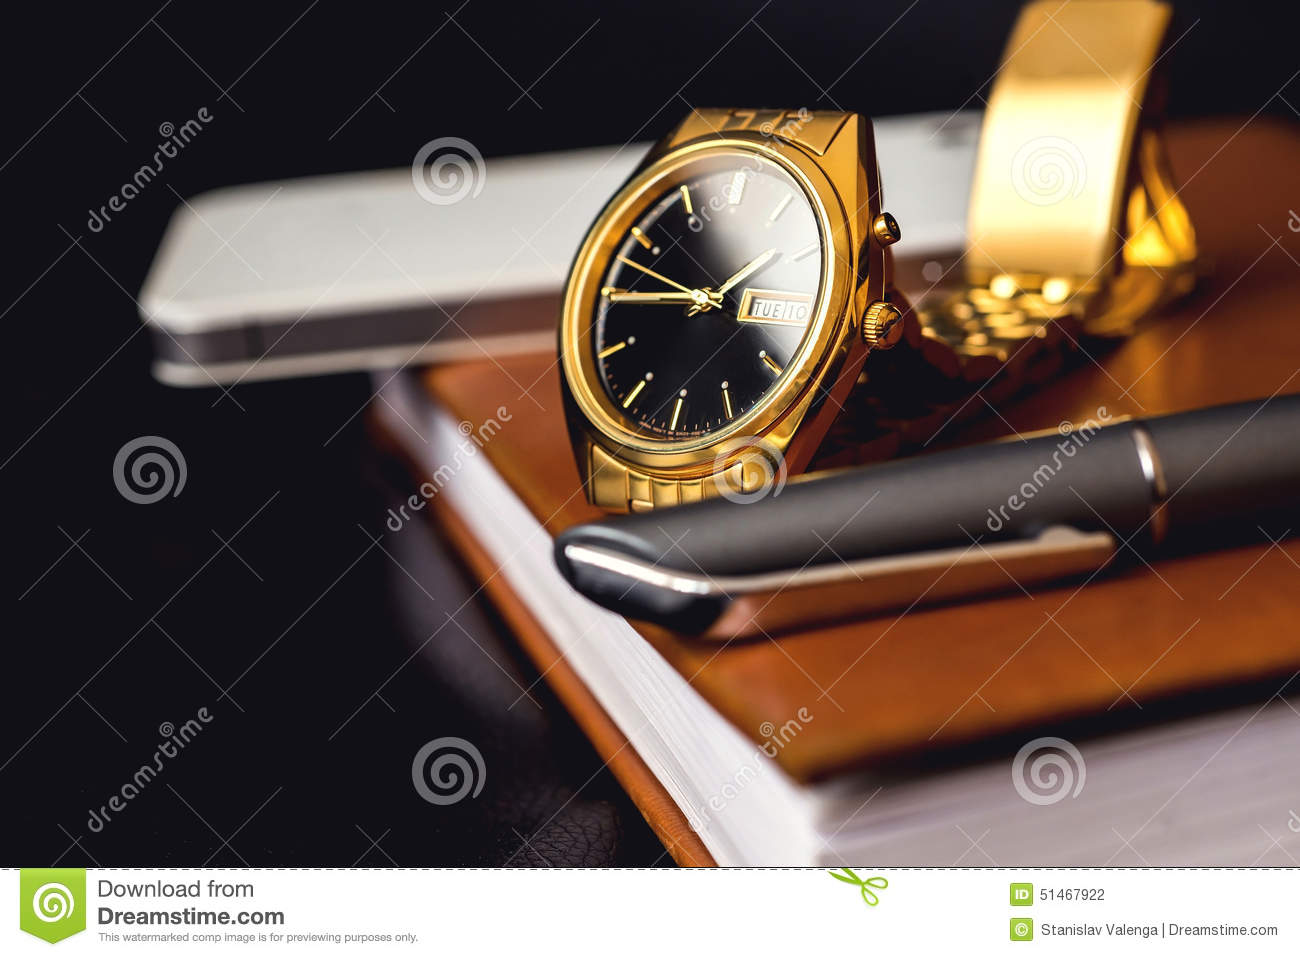 Men s accessory, golden watch, pen and mobile phone on the leather diary.